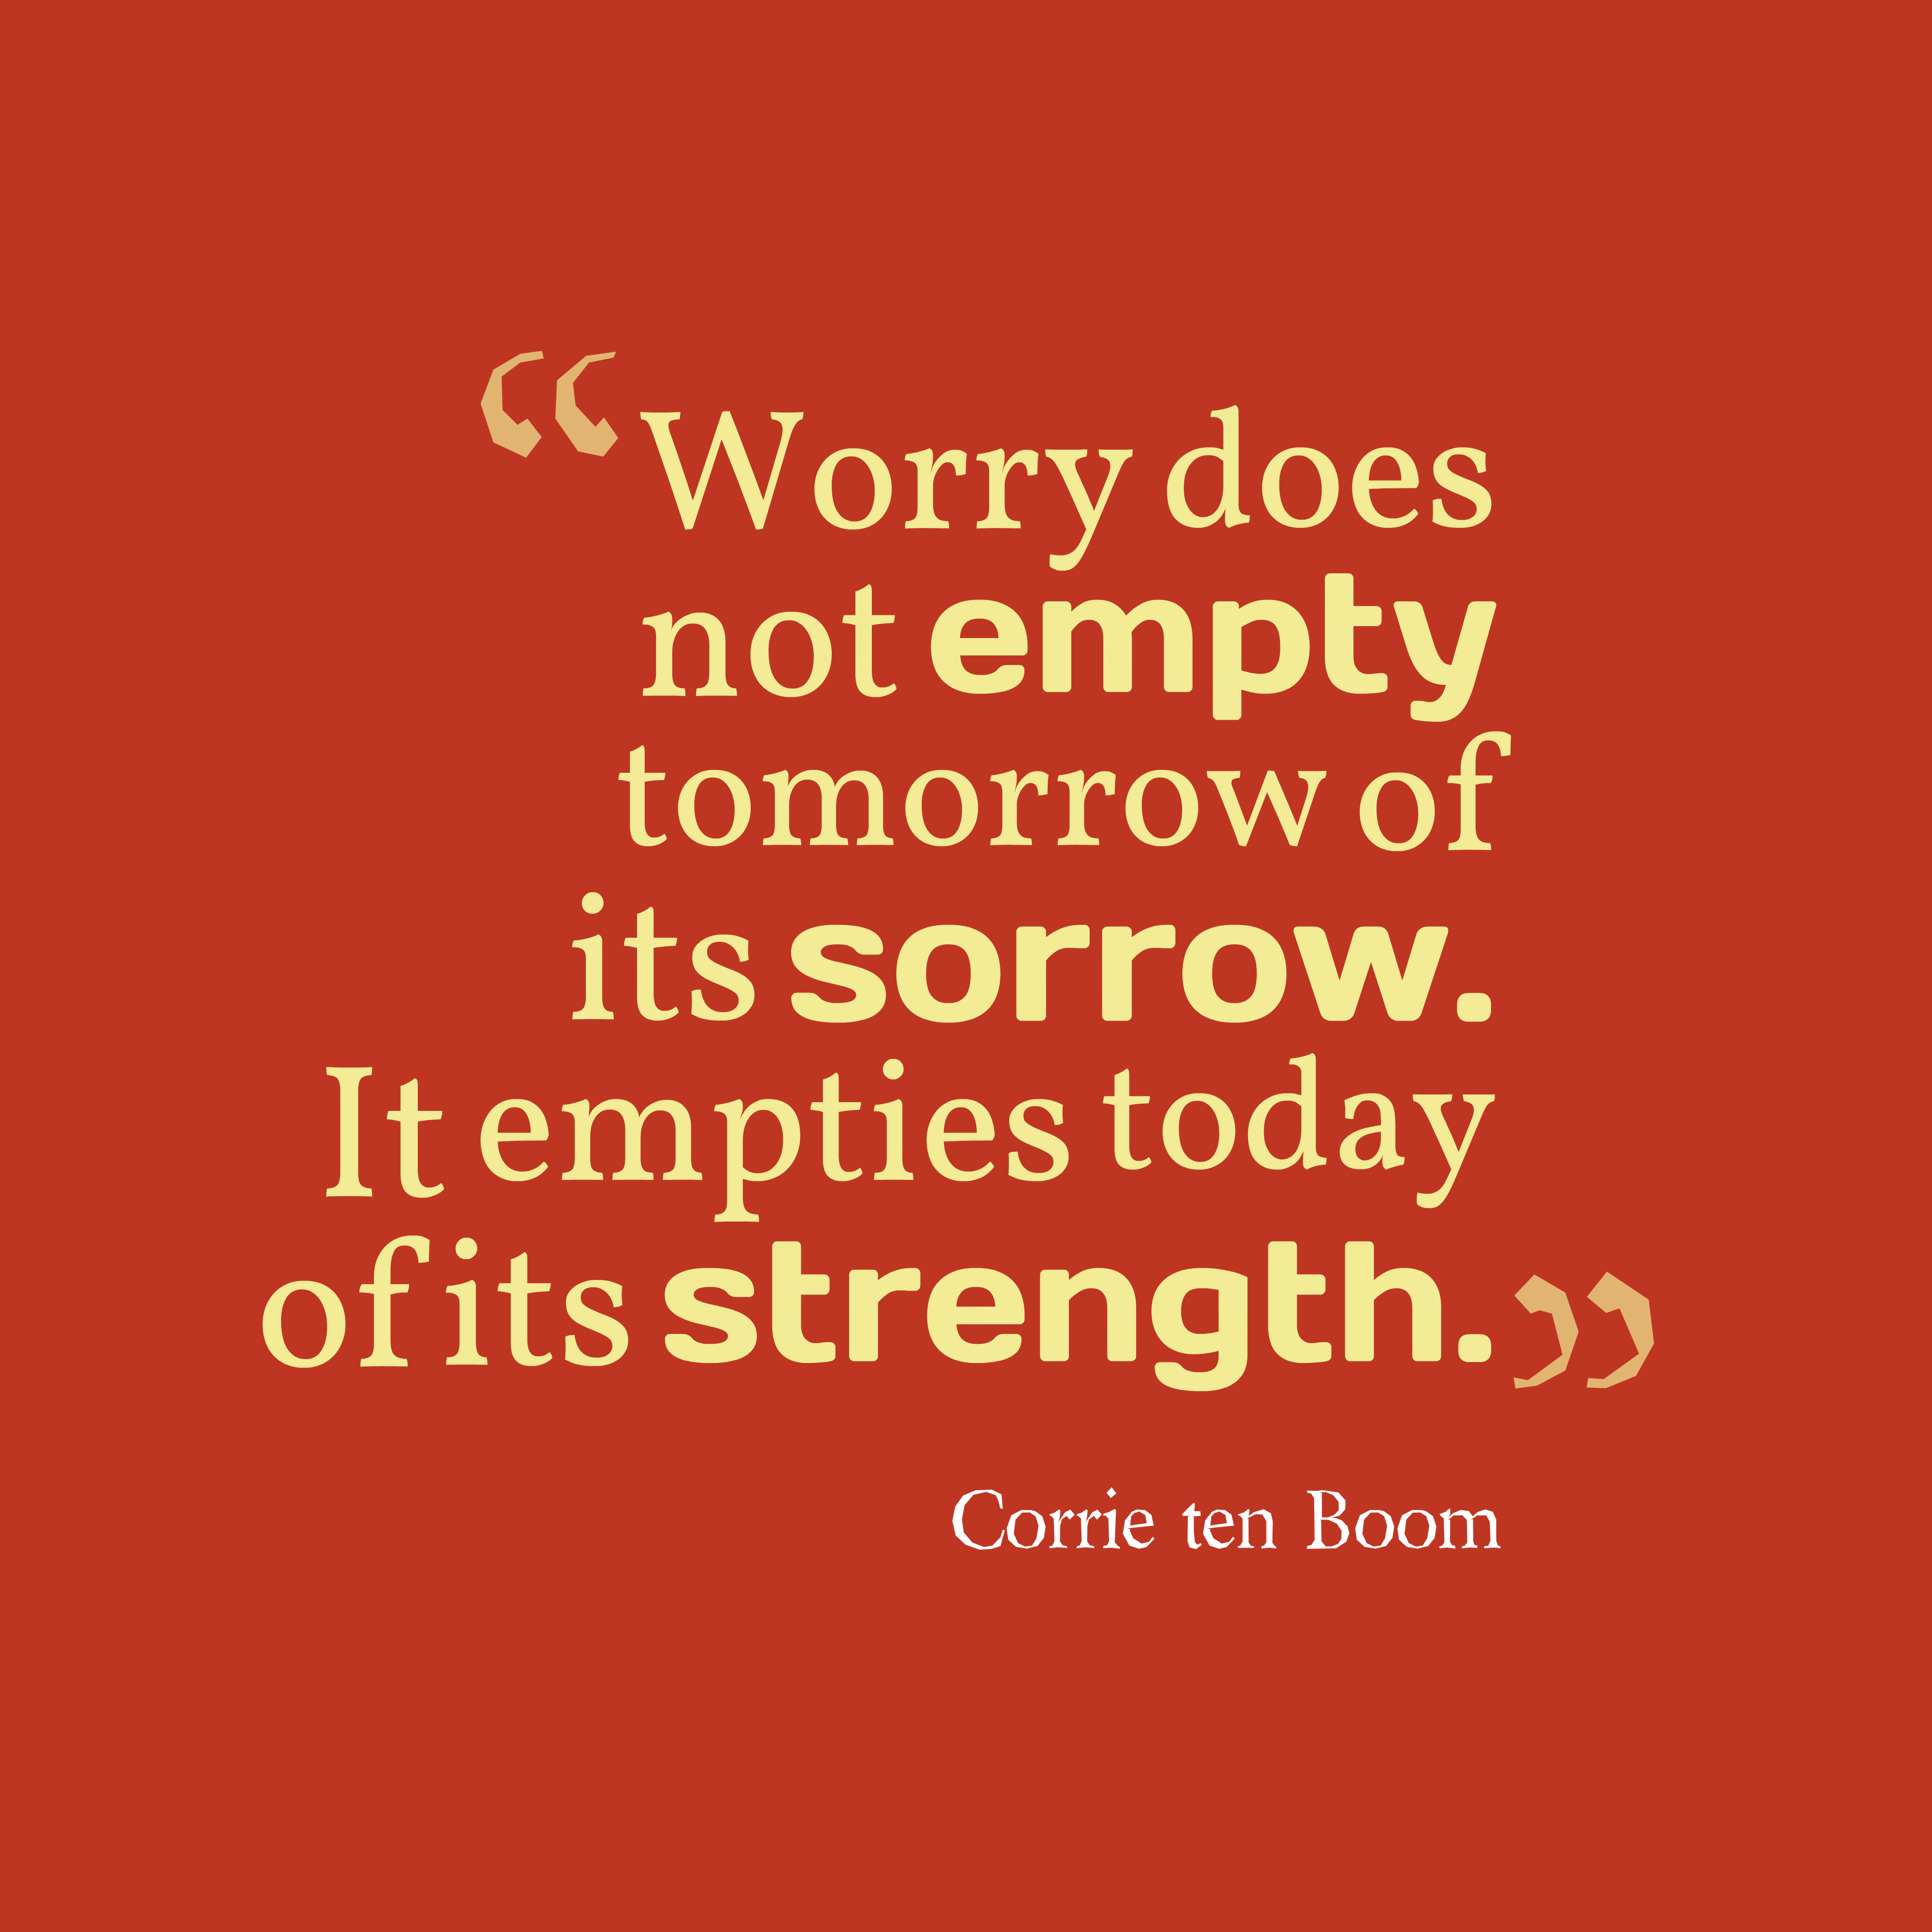 Quotes image of Worry does not empty tomorrow of its sorrow. It empties today of its strength.